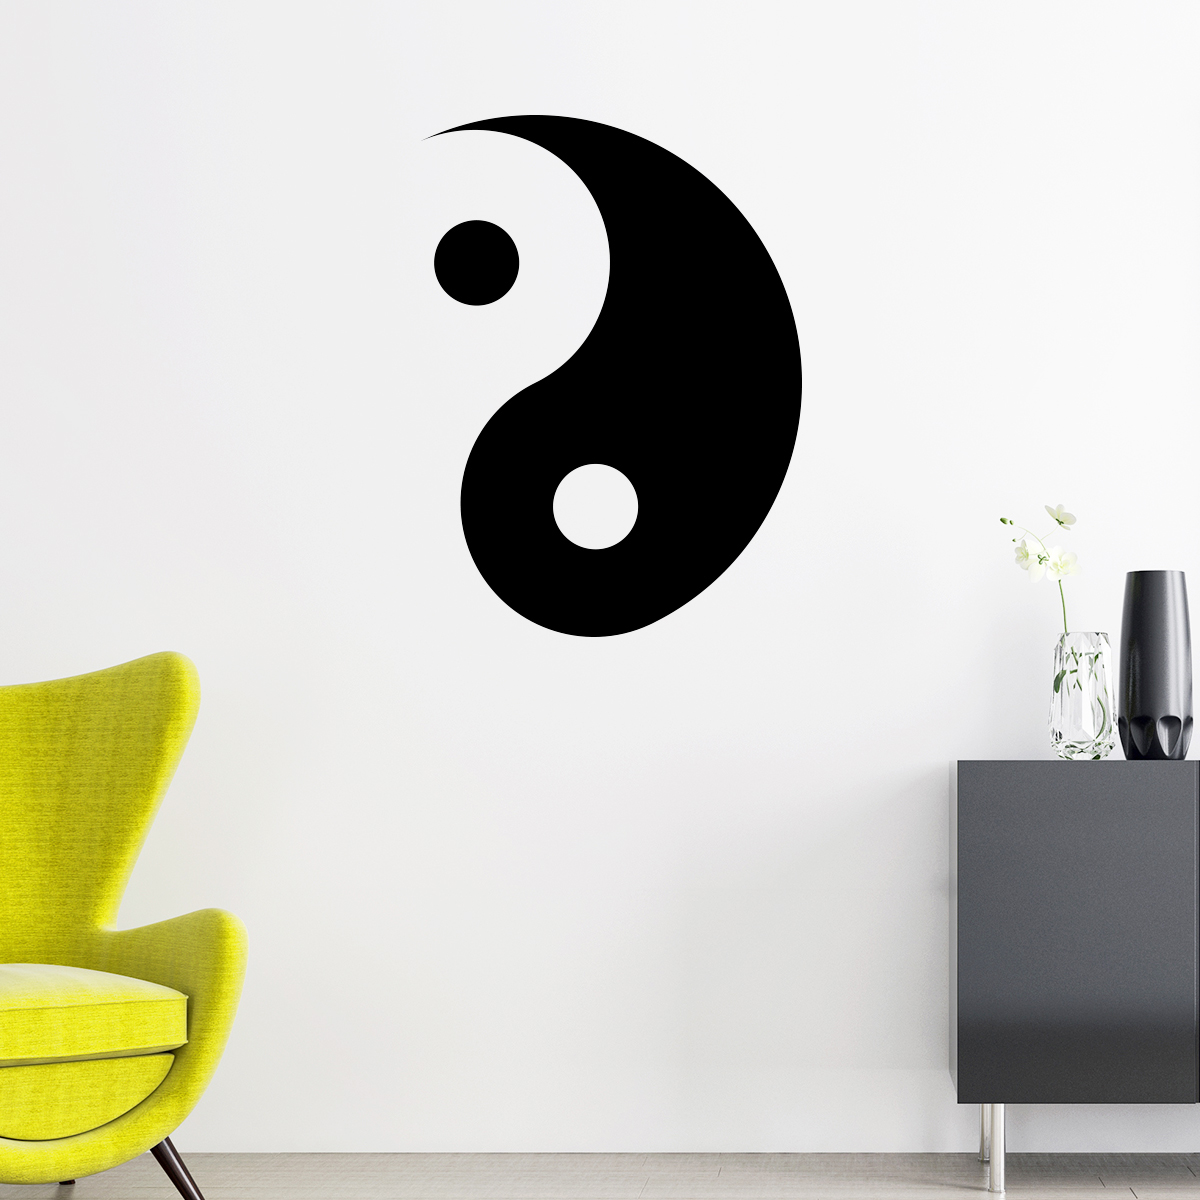 Cuisine Pinterest Ying Yang - Stickers Deco Design